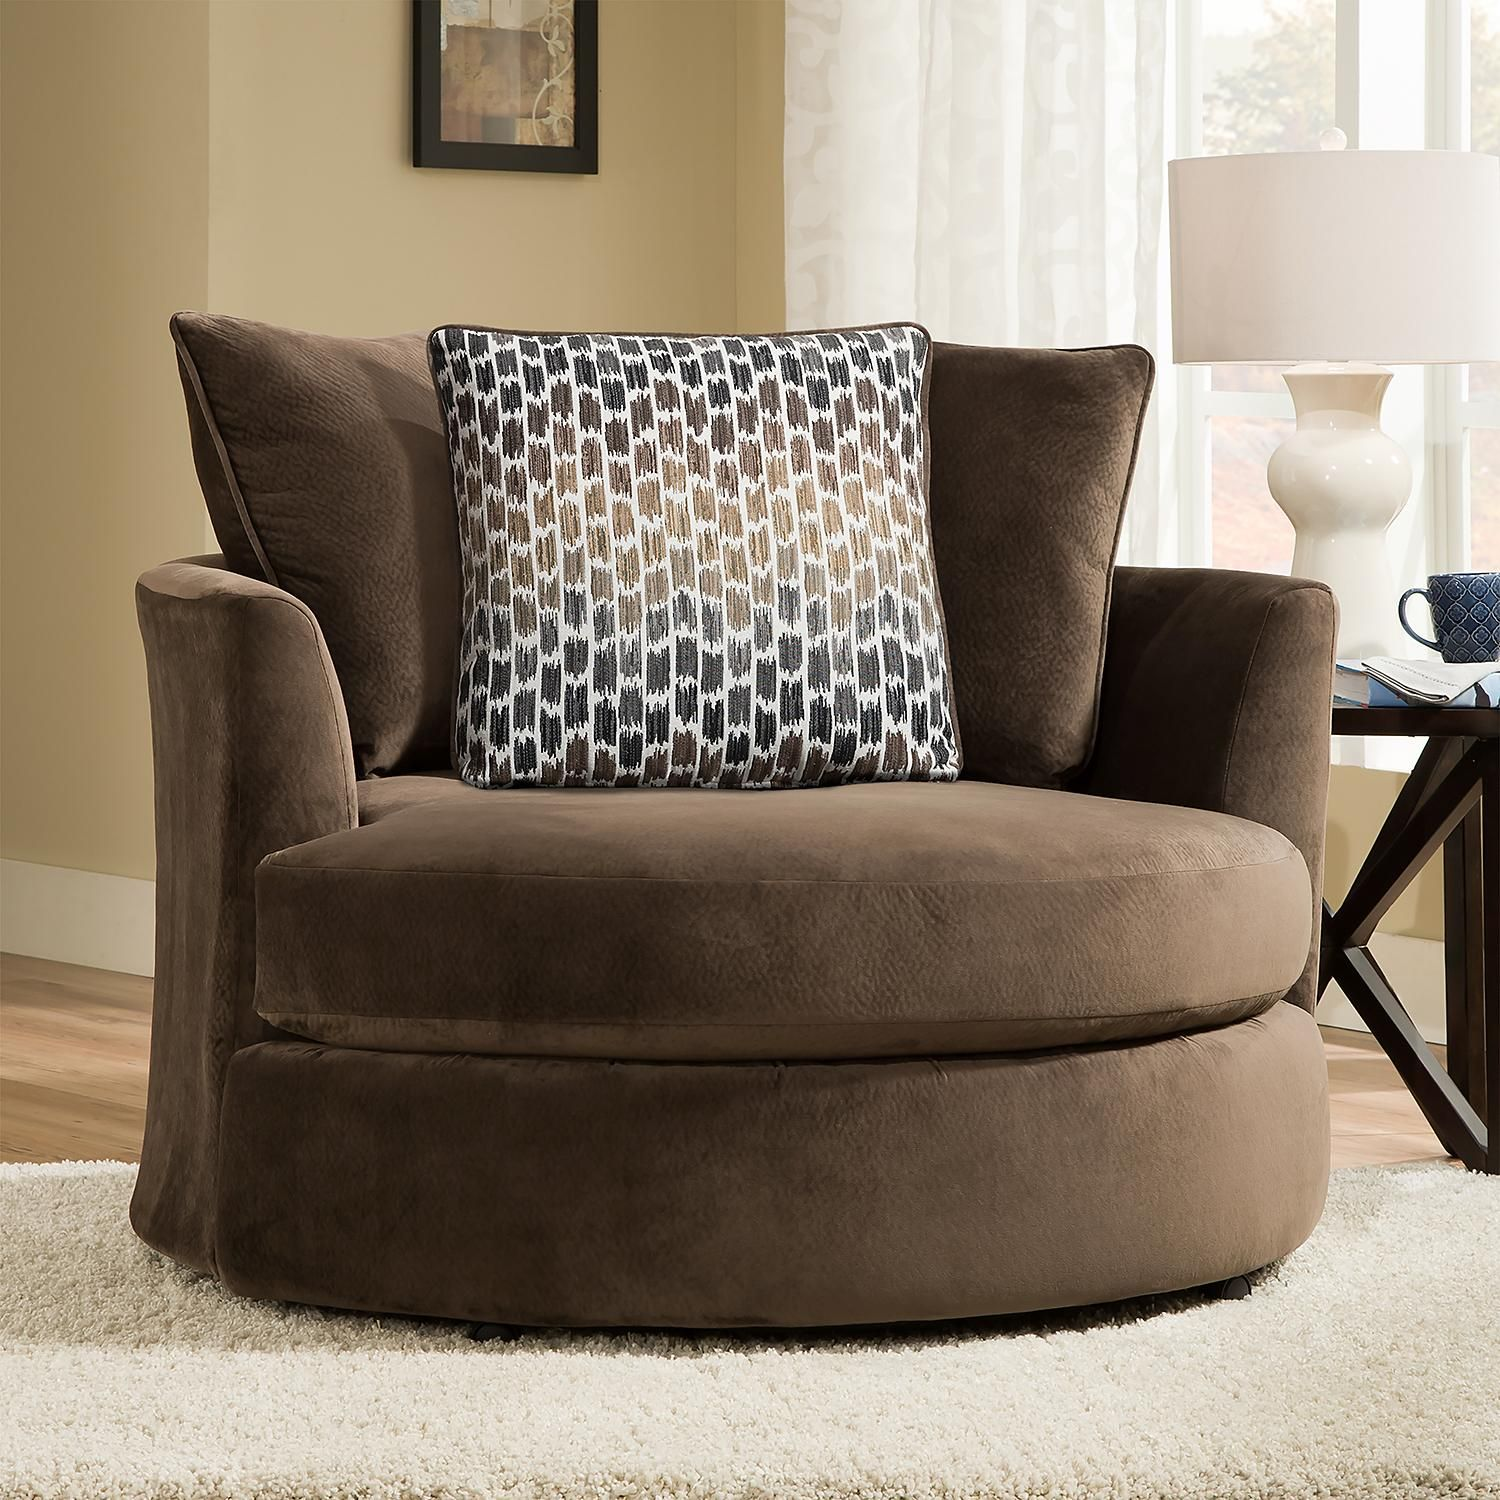 Member S Mark Brooke S Swivel Chair Sam S Club Living Room Chairs Comfortable Living Room Chairs Upholstered Chaise Lounge